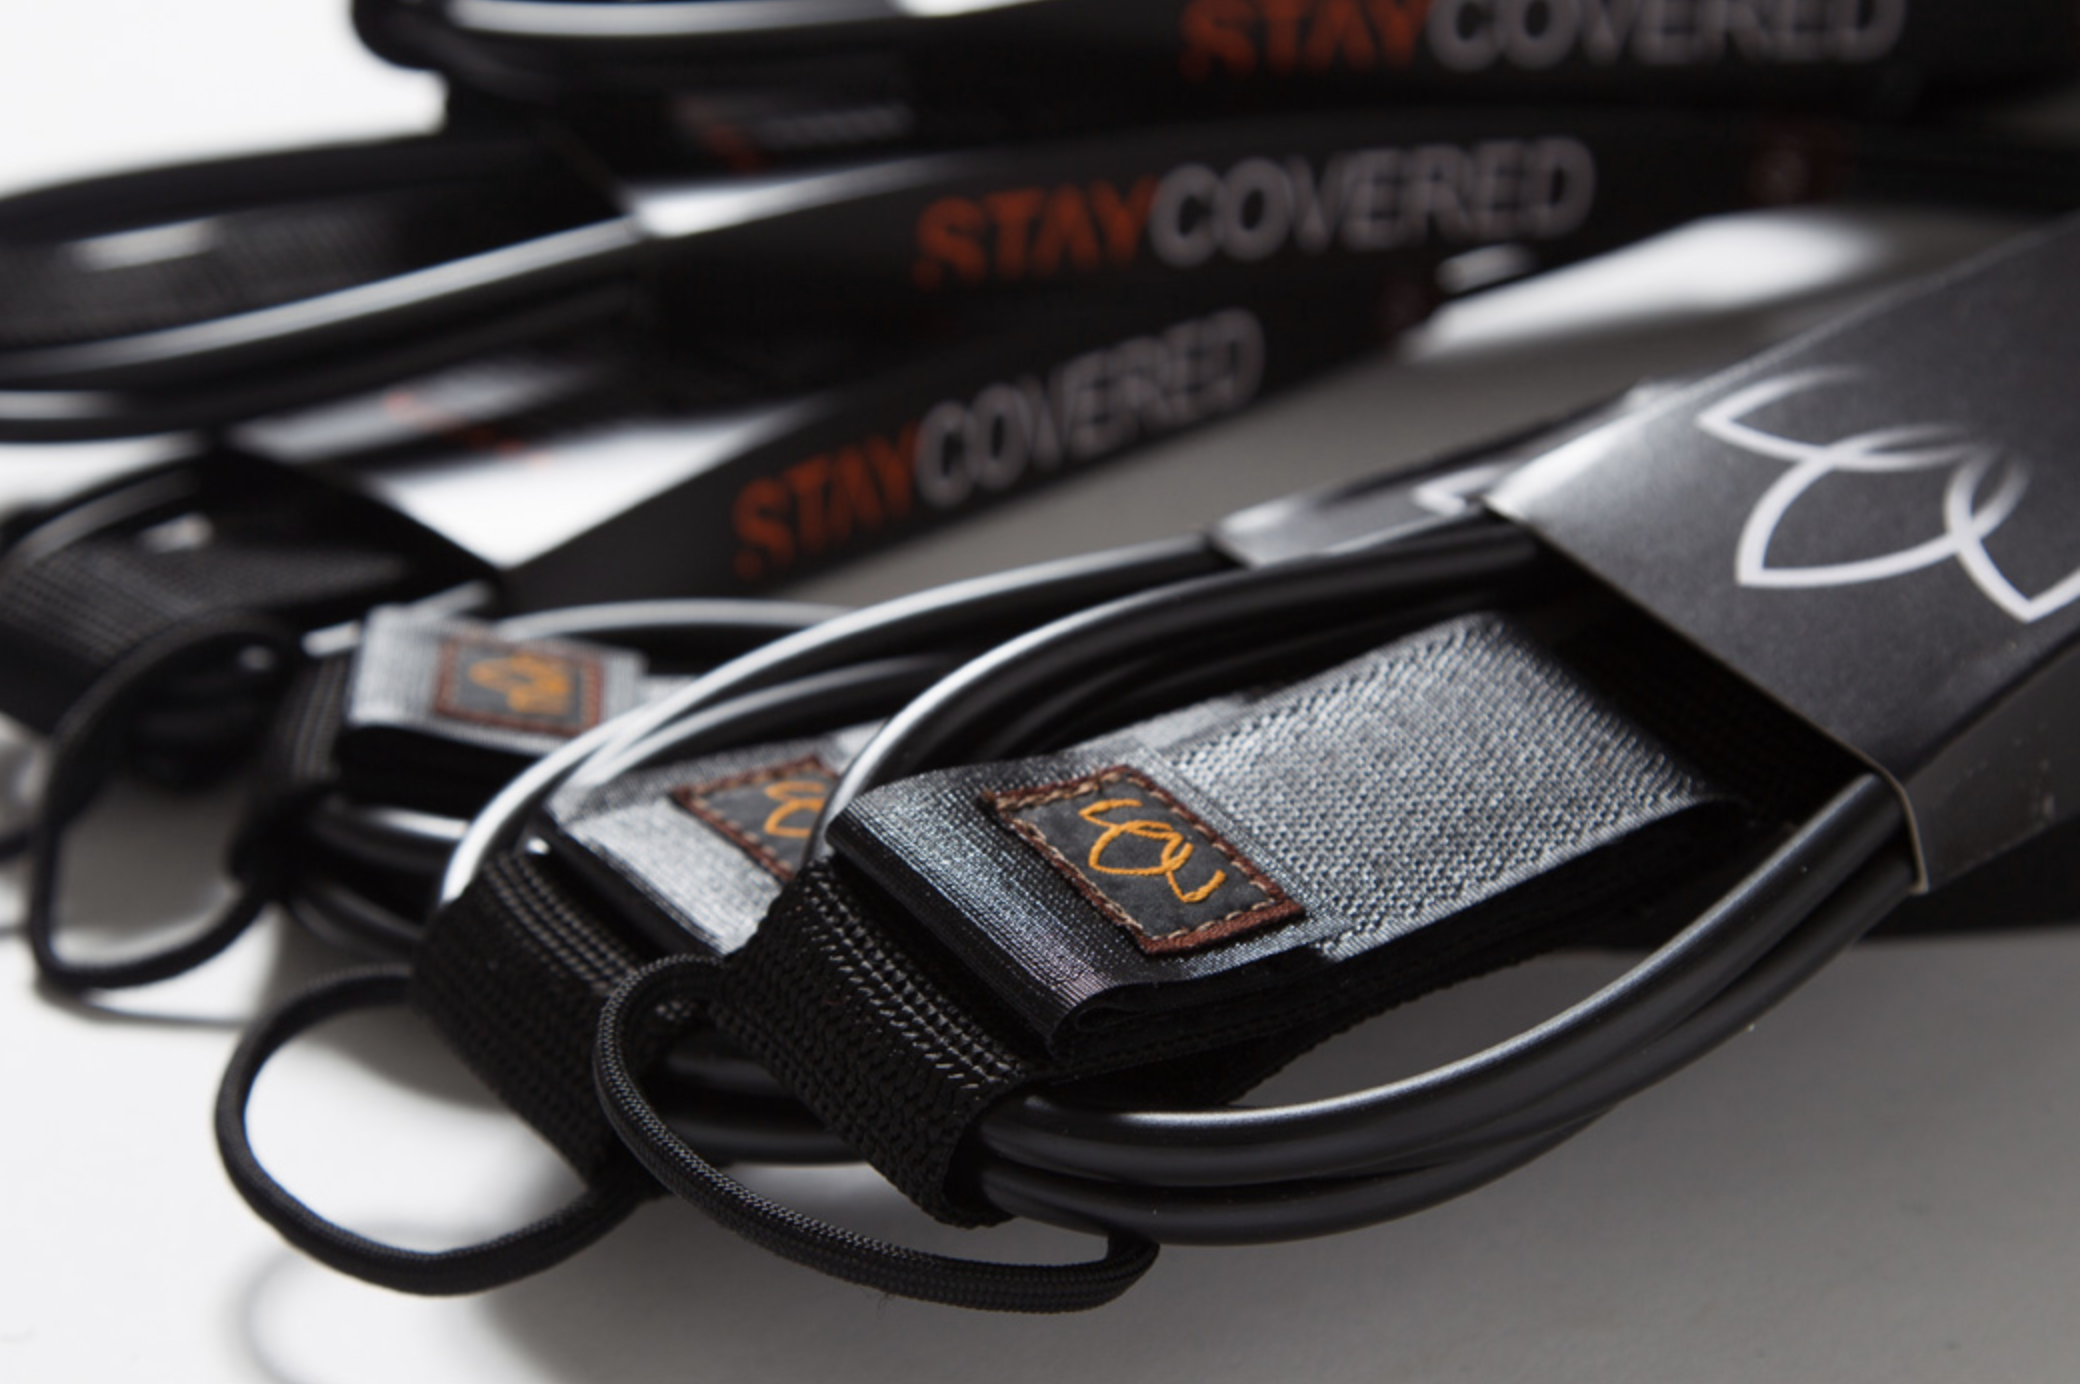 [STAY COVERED] リーシュ 9ft KNEE COMP mat black